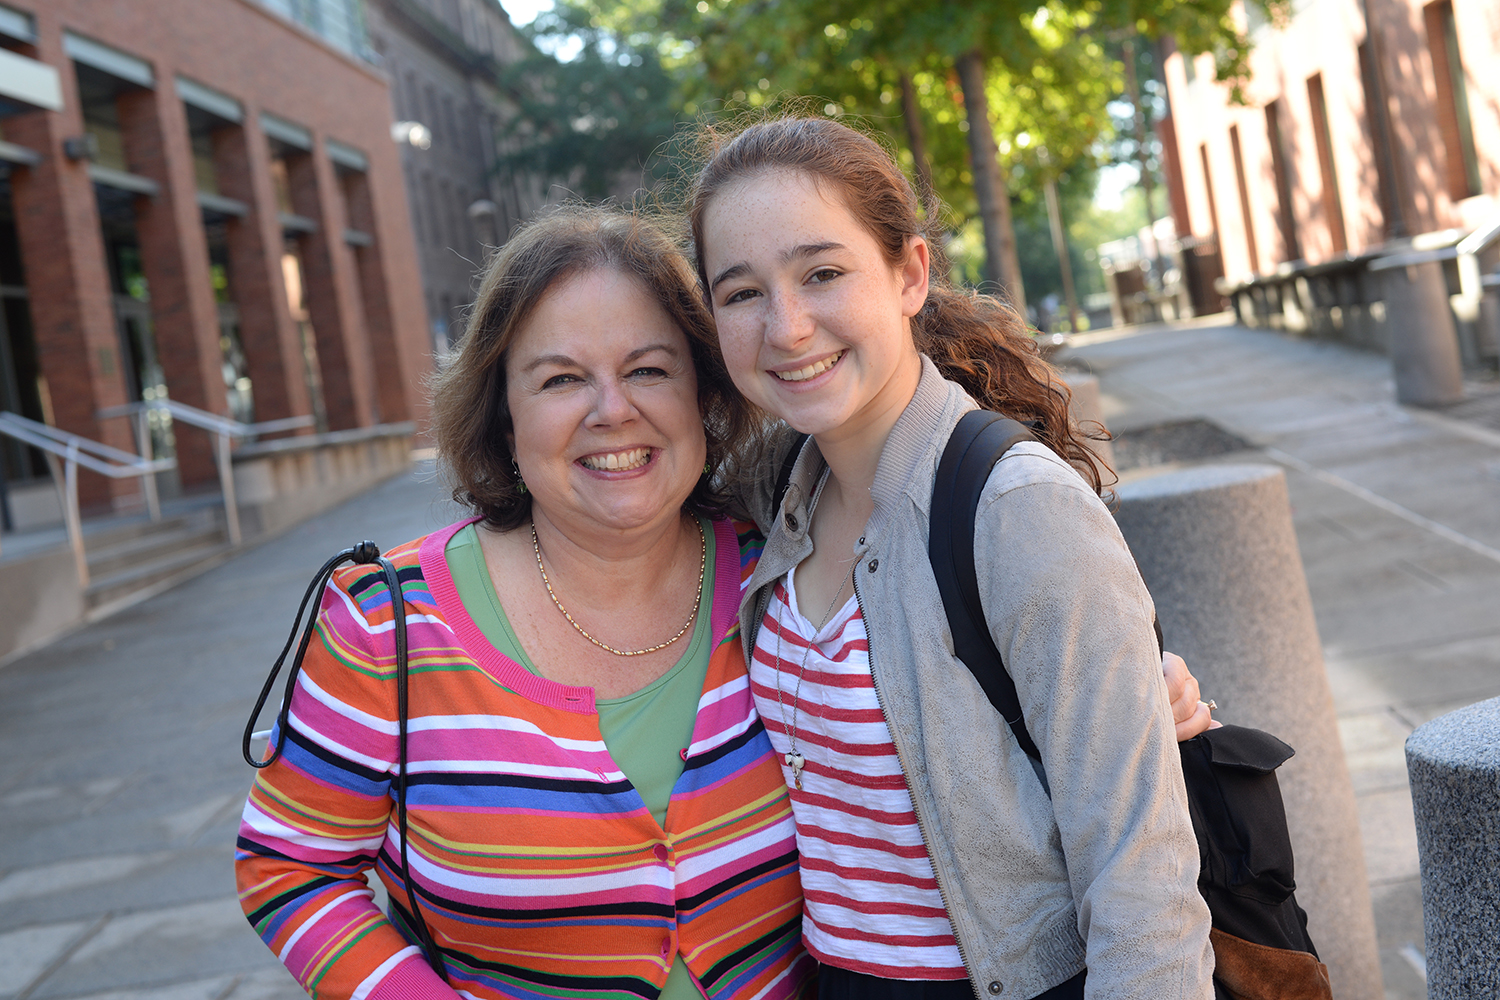 Diane LaPointe '79, P'17 of Bedford, N.Y. is attending Family Weekend with her daughter, Megan Dolan '17.